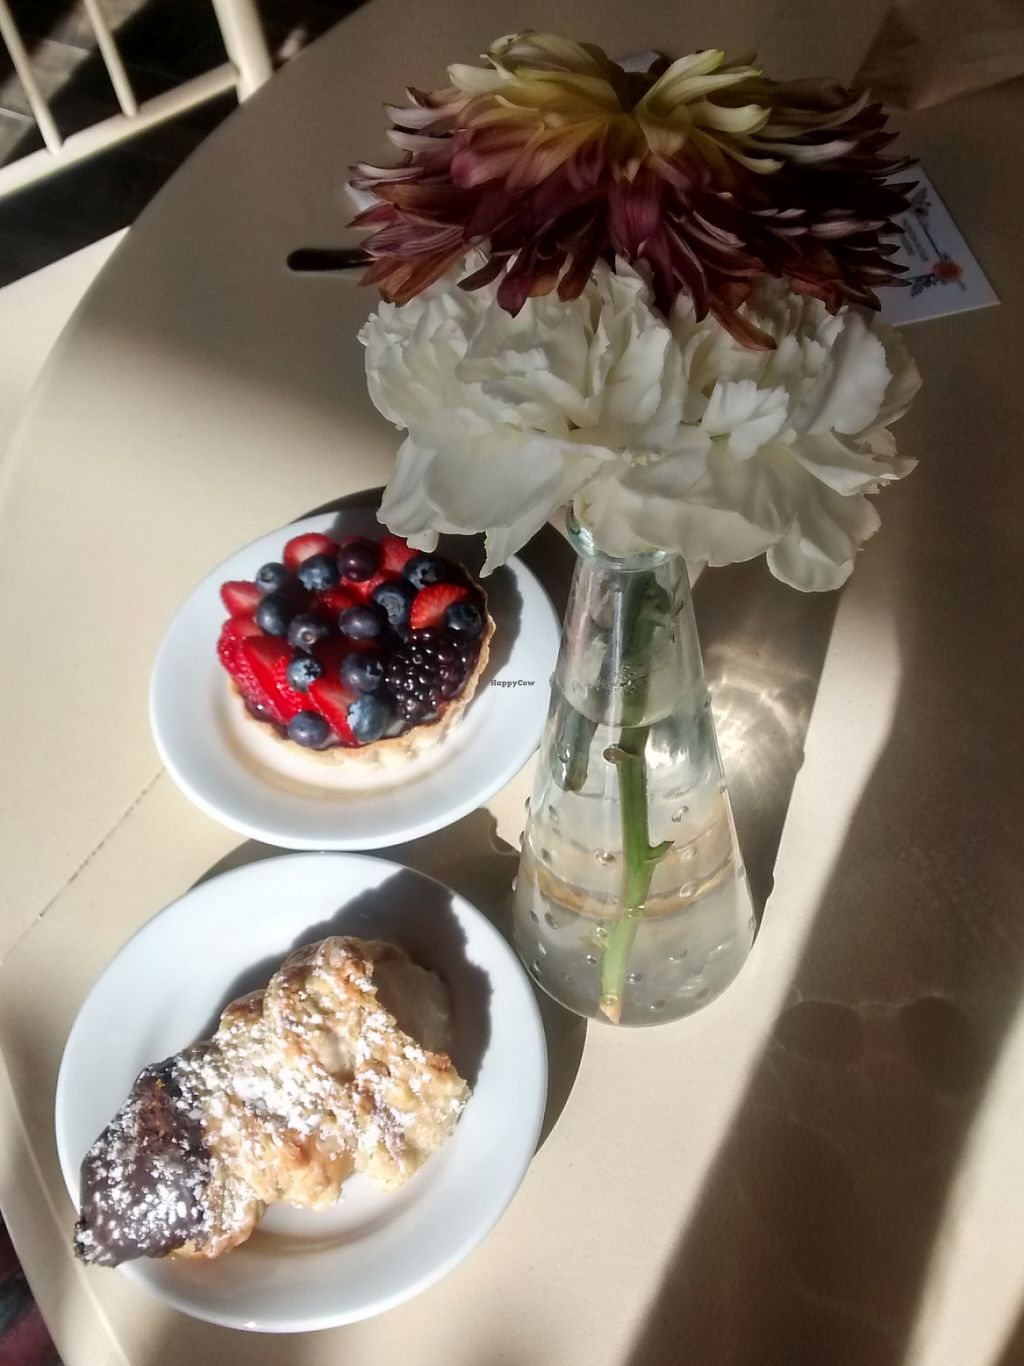 """Photo of Passion Flour Patisserie  by <a href=""""/members/profile/veganyoginimama"""">veganyoginimama</a> <br/>Picture of the french horn and fruit tart at Passion Flour Patisserie <br/> November 9, 2015  - <a href='/contact/abuse/image/60018/230620'>Report</a>"""